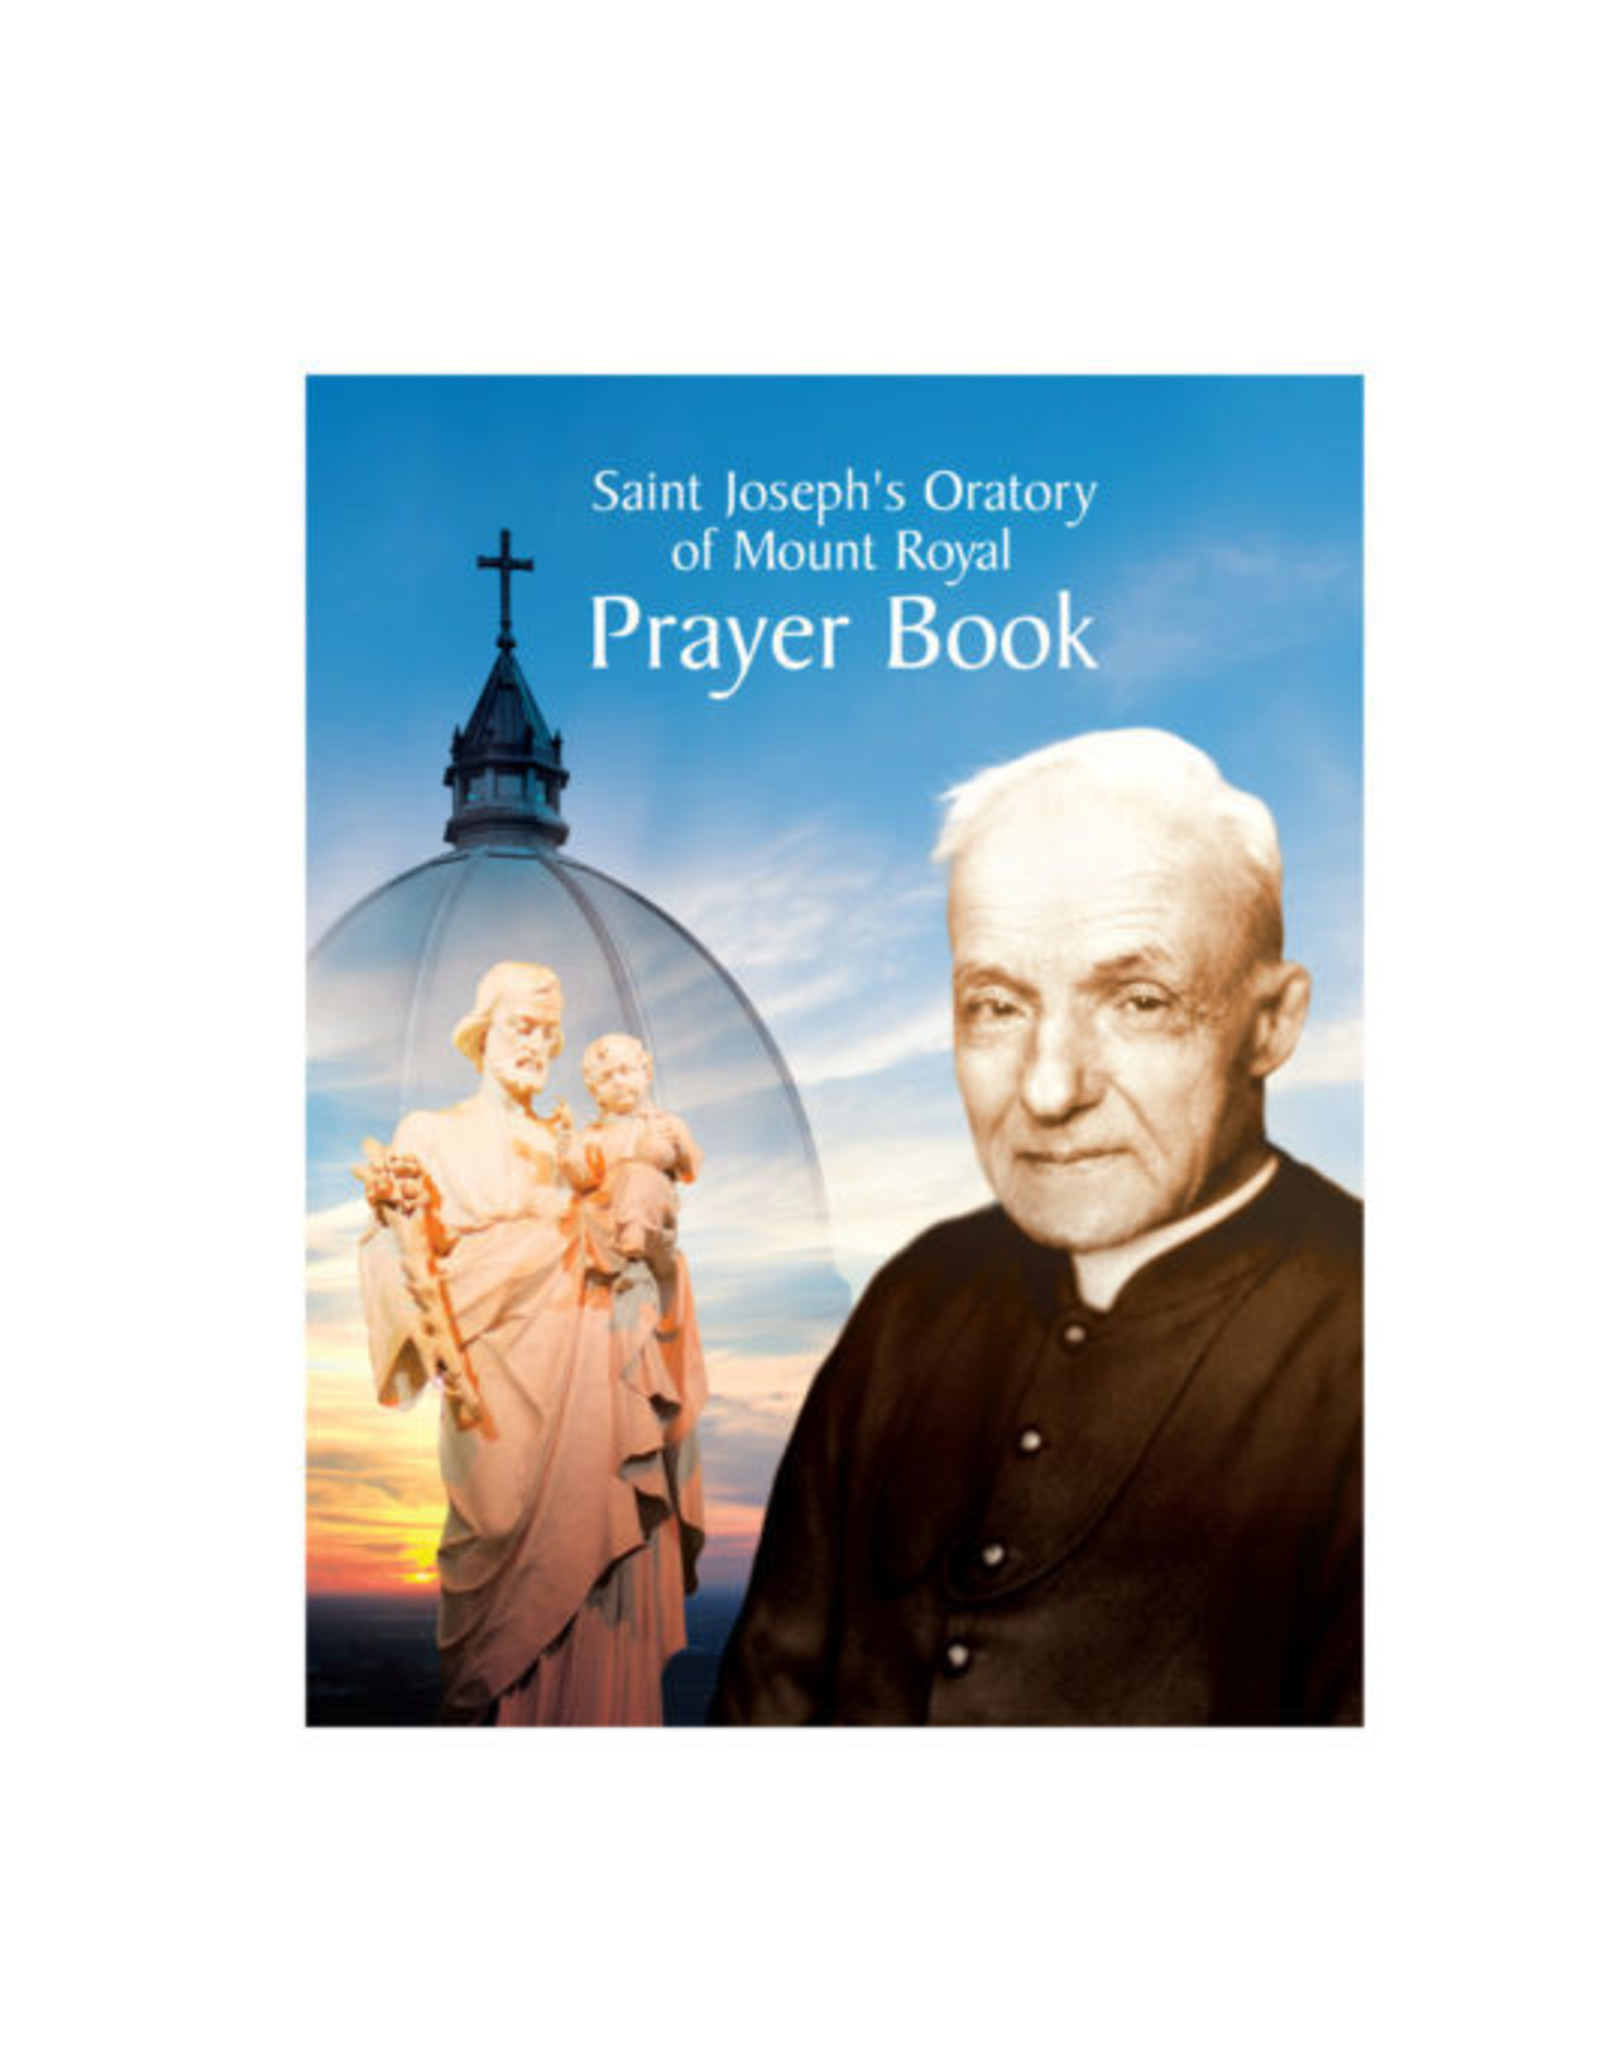 L'Oratoire Saint-Joseph du Mont-Royal Saint Joseph's Oratory of Mount Royal Prayer Book